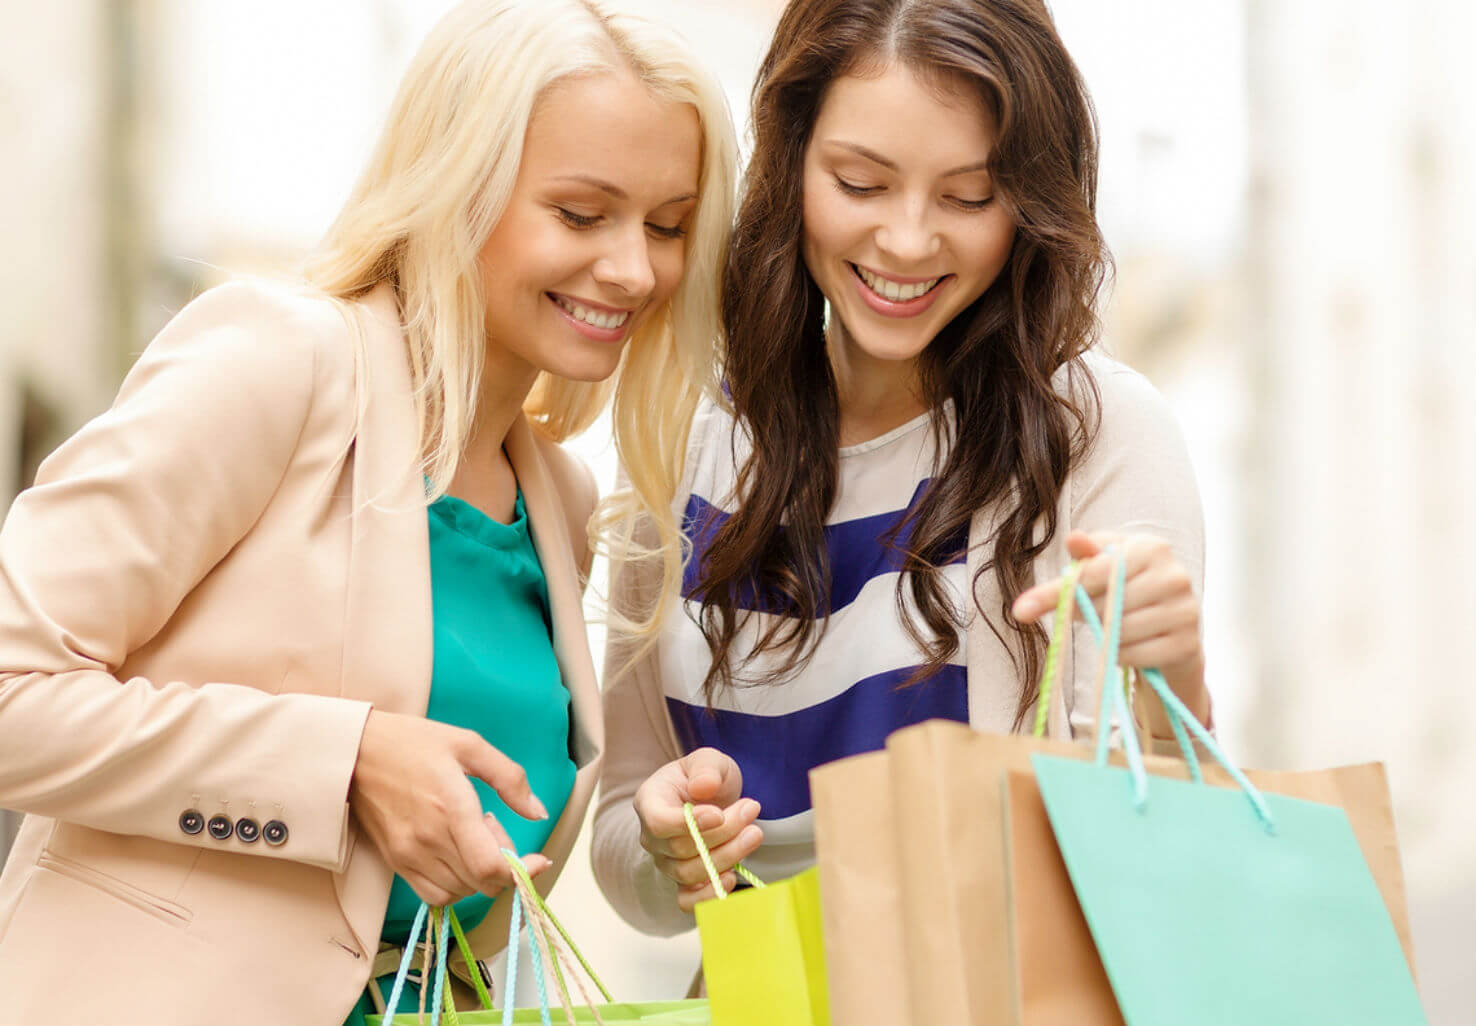 Two women happily looking at their shopping bags